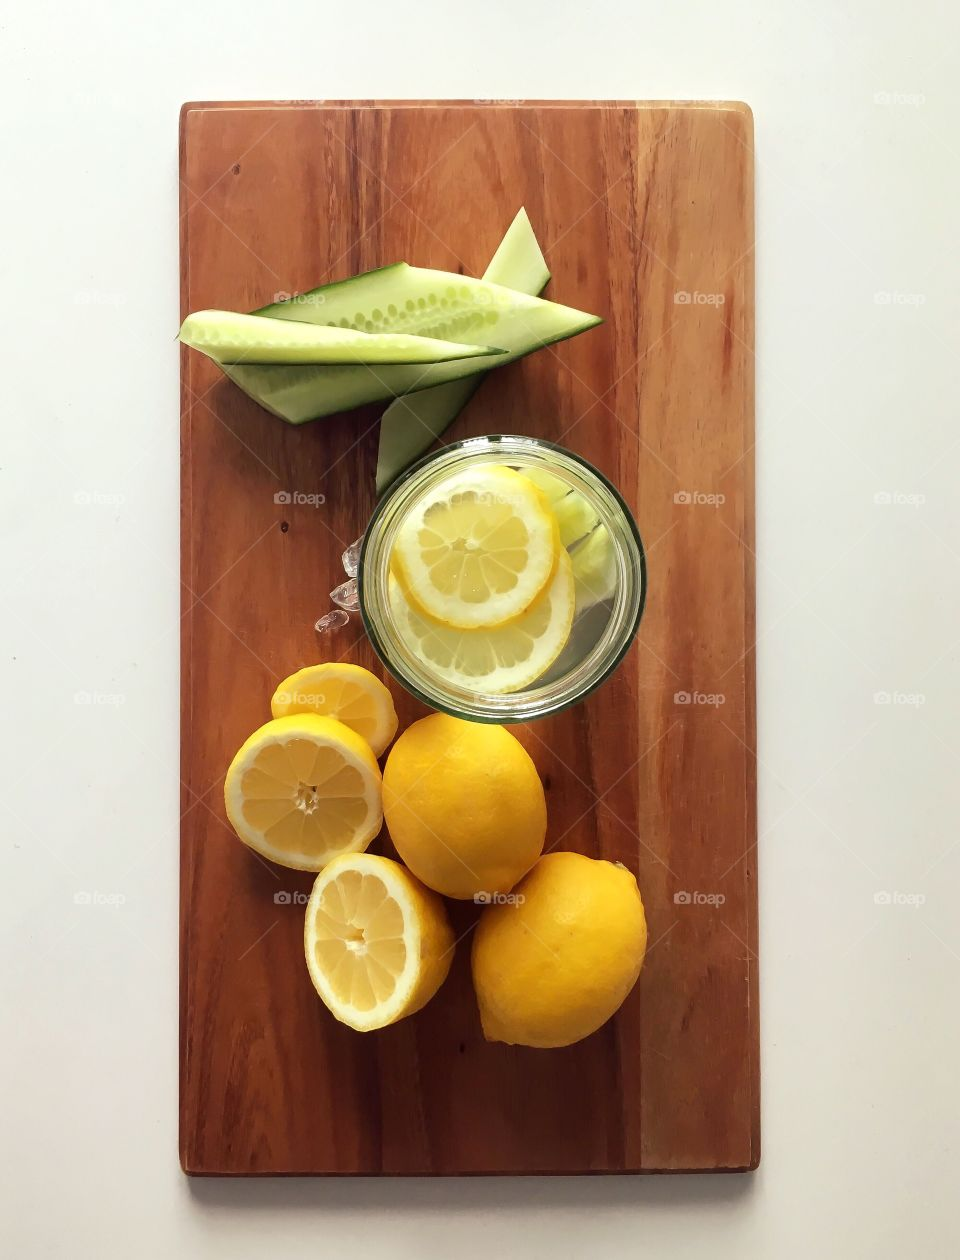 Fresh lemon/cucumber water. Cucumbers and lemons are on the cutting board for processing. Glass is like a ice and mark of cold refreshing water.